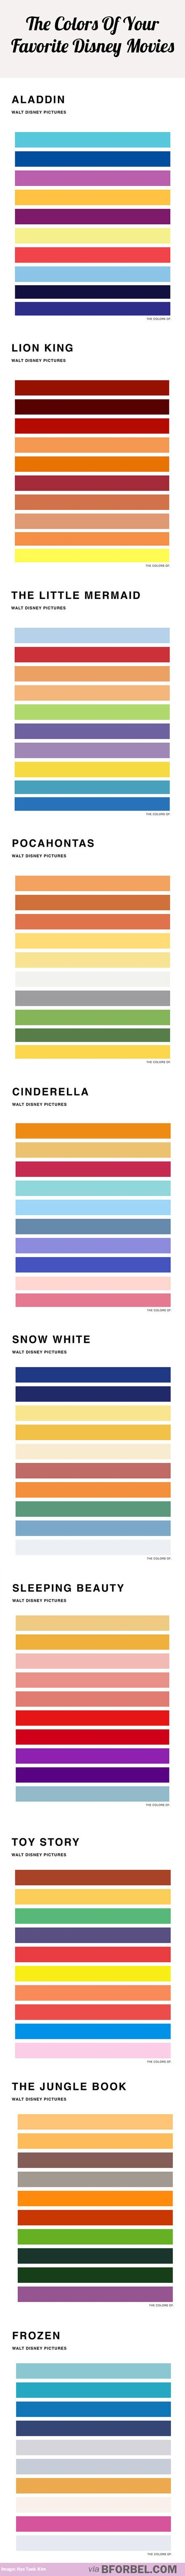 Color schemes of your favorite Disney movies >> now I can choose dining room colours